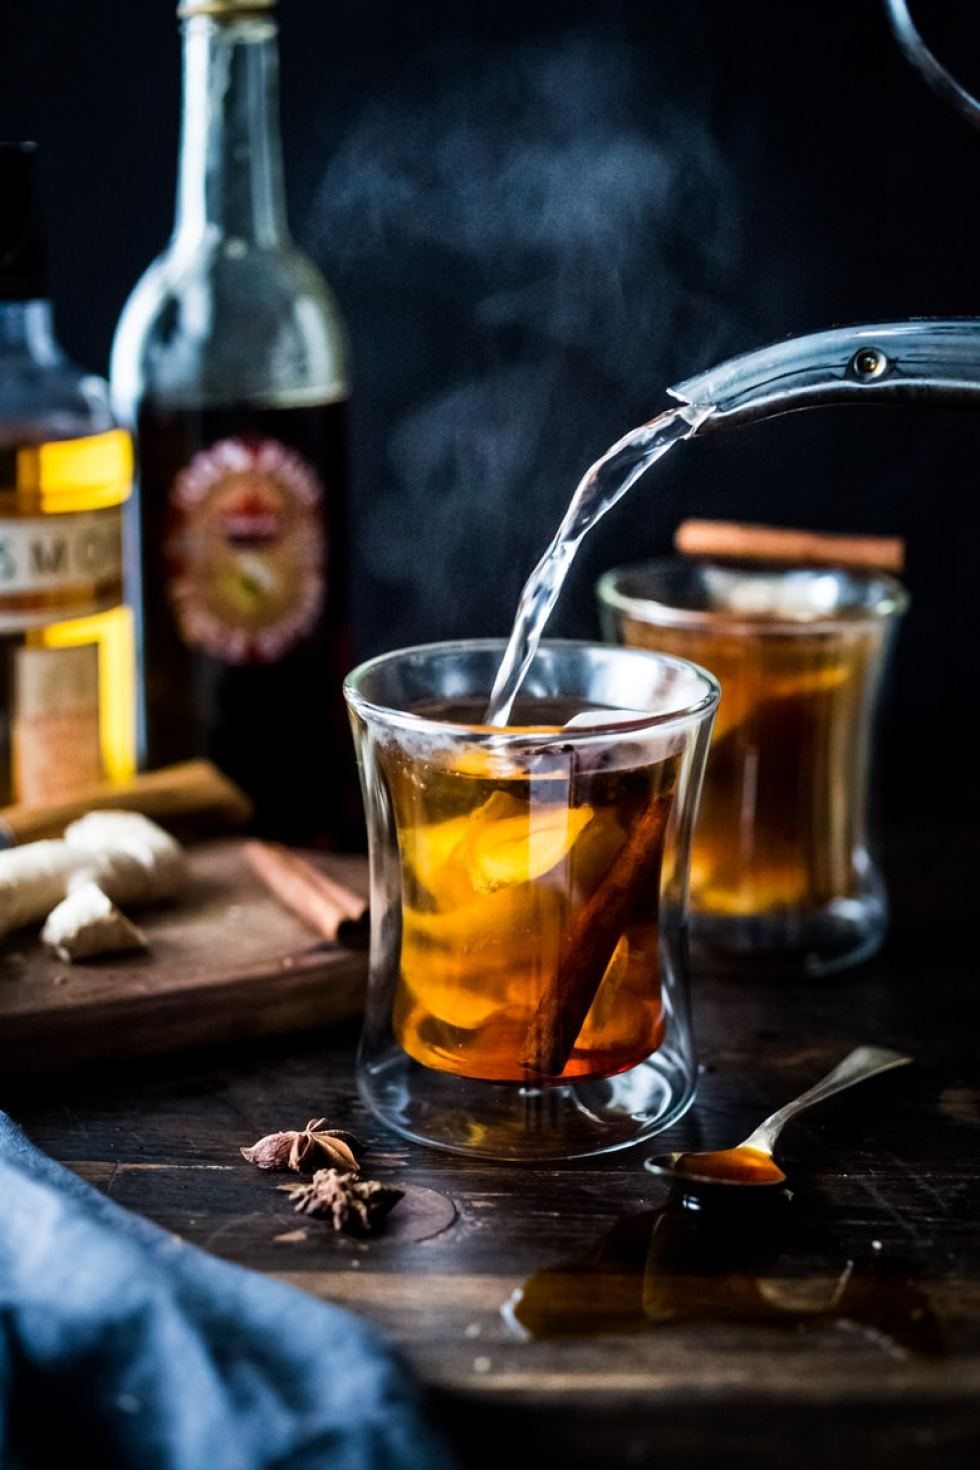 Maple Ginger Hot Toddy- made with whiskey, ginger tea, hot water, muddled ginger, maple or honey, whole spices and a squeeze of lemon- soothes a sore throat and warms the body. | www.feastingathome.com #celestialseasonings #themagicoftea